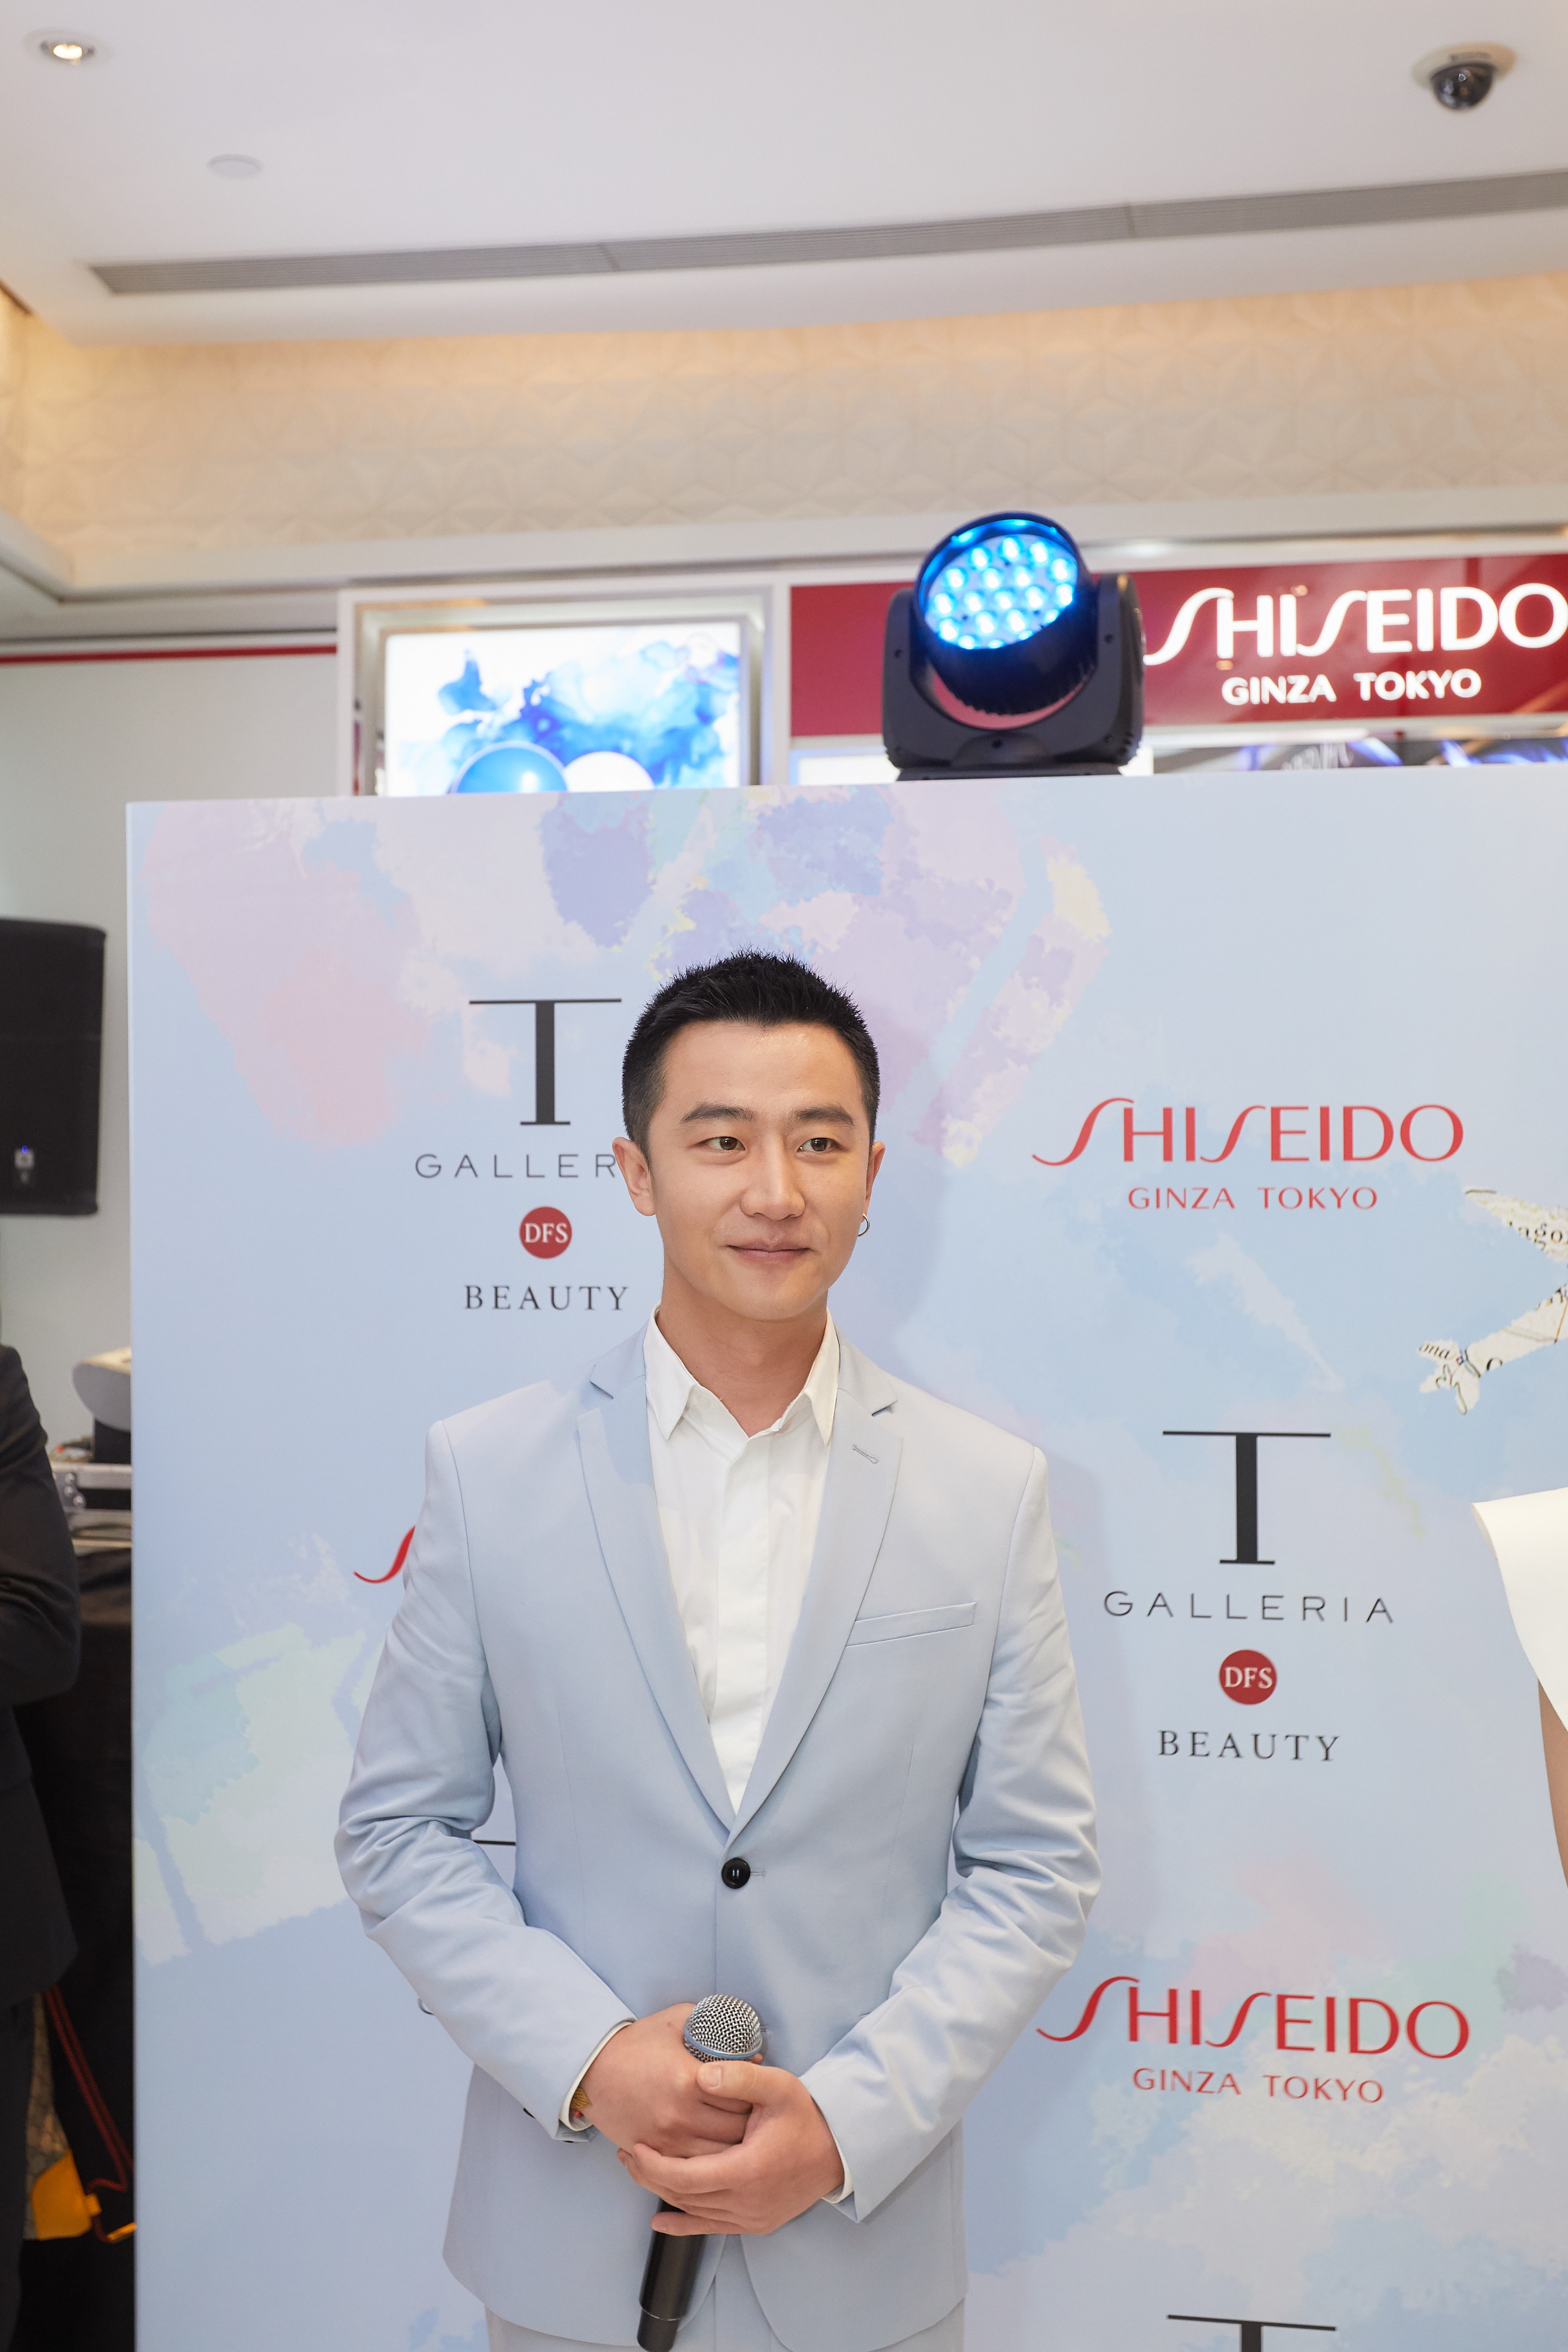 T Galleria by DFS Hosts Shiseido's New China Skincare